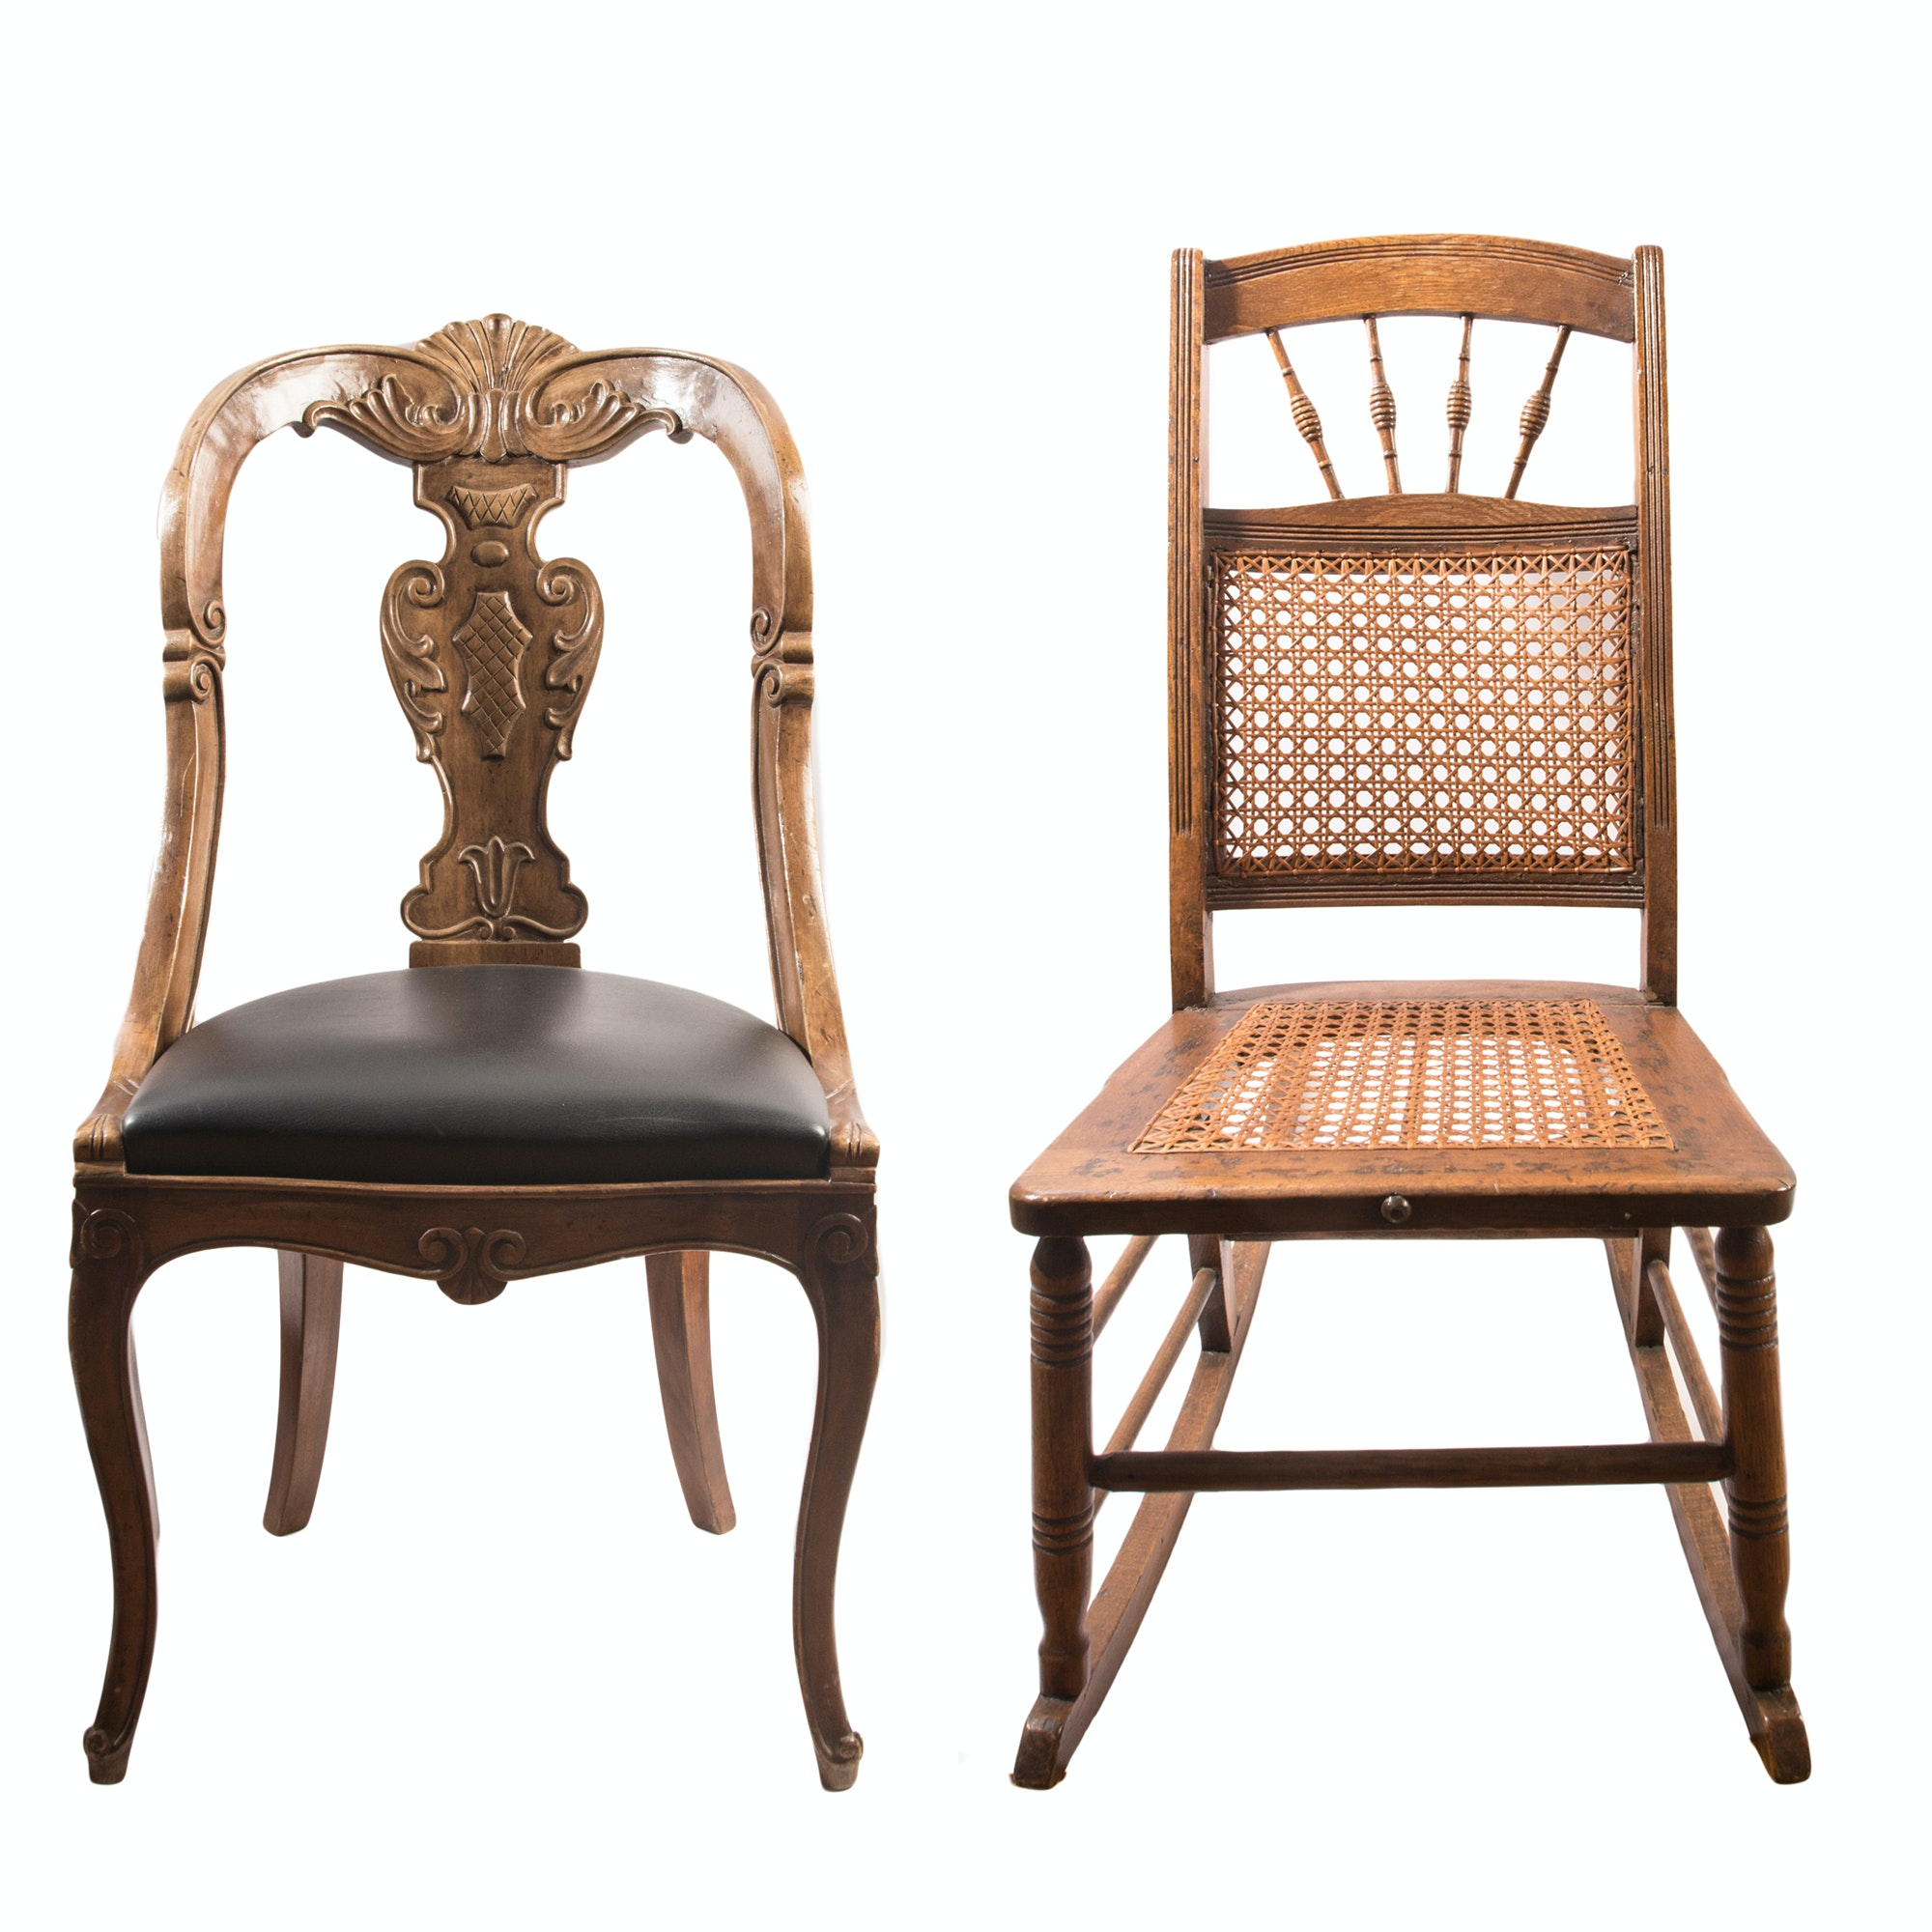 Vintage Rocking Chair and Side Chair